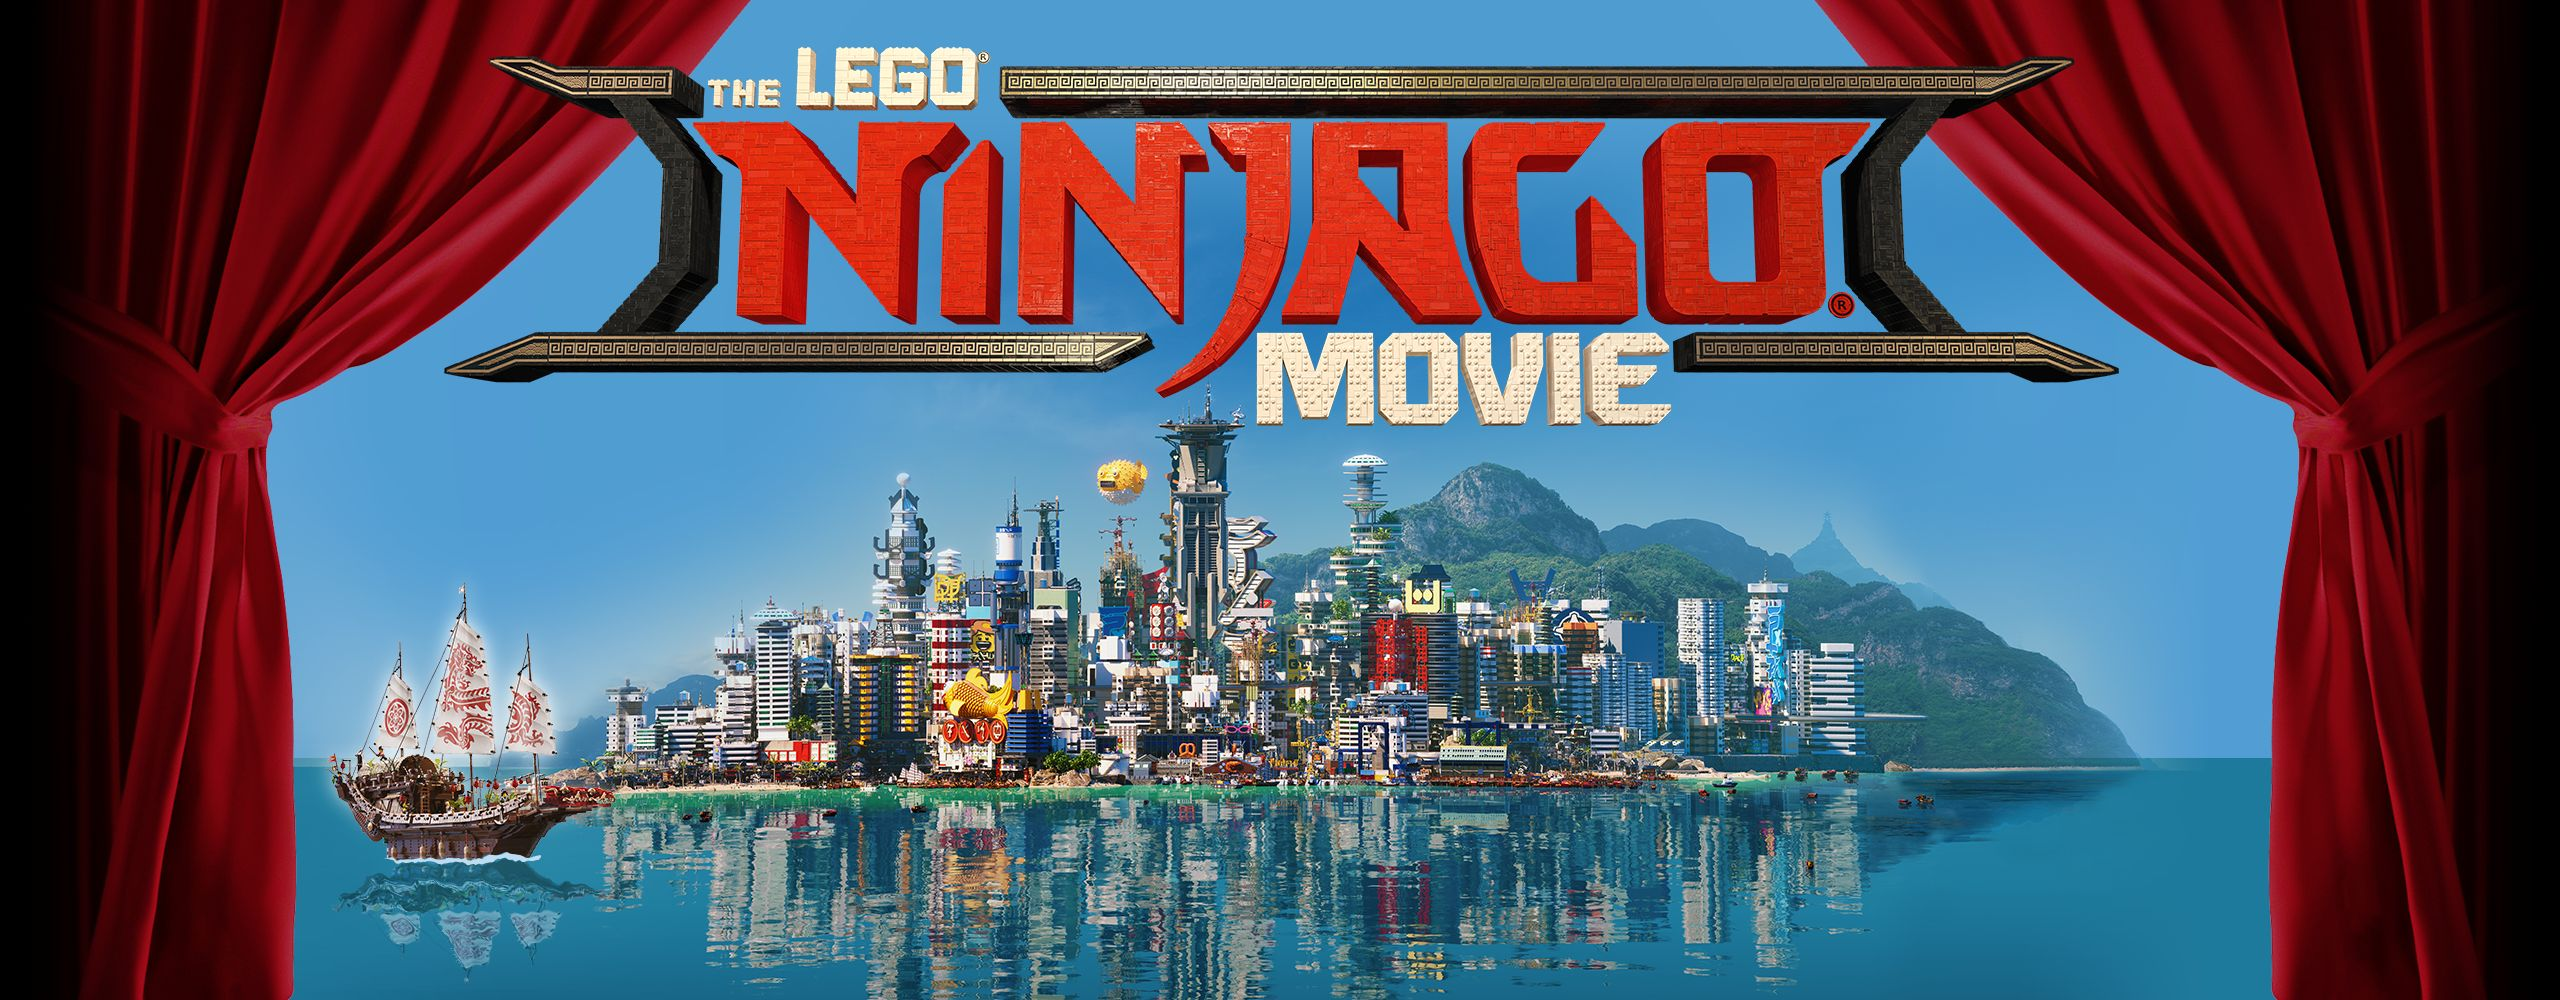 Review The Lego Ninjago Movie I Am Your Target Demographic